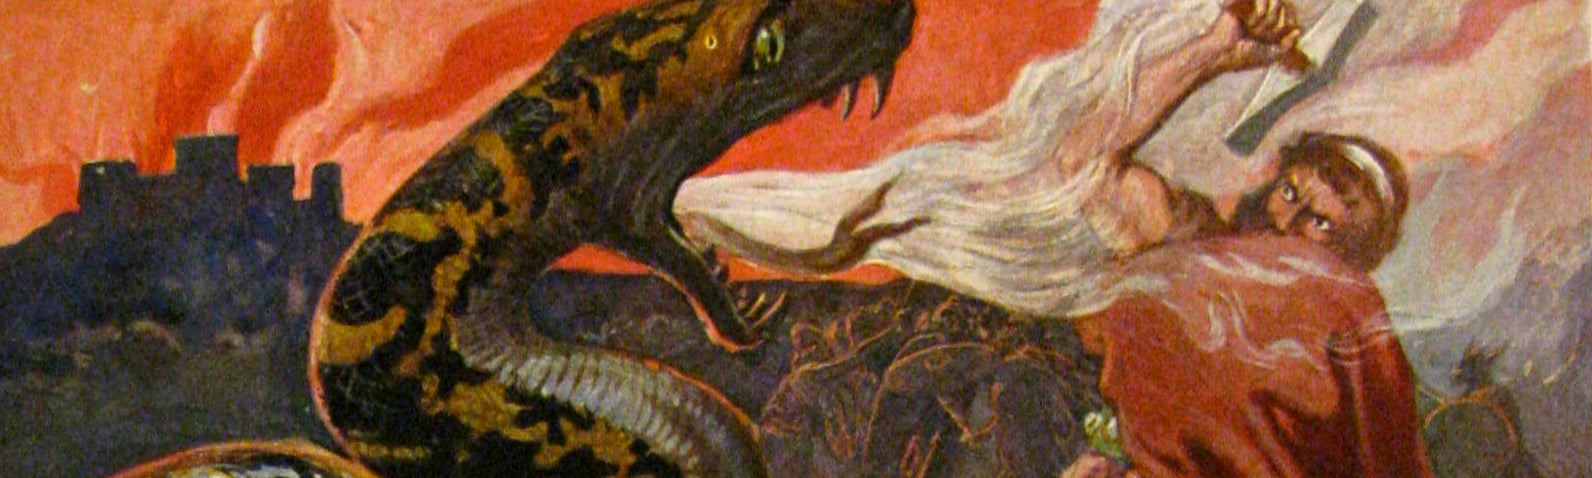 Thor and the Midgard Serpent (by Emil Doepler, 1905)